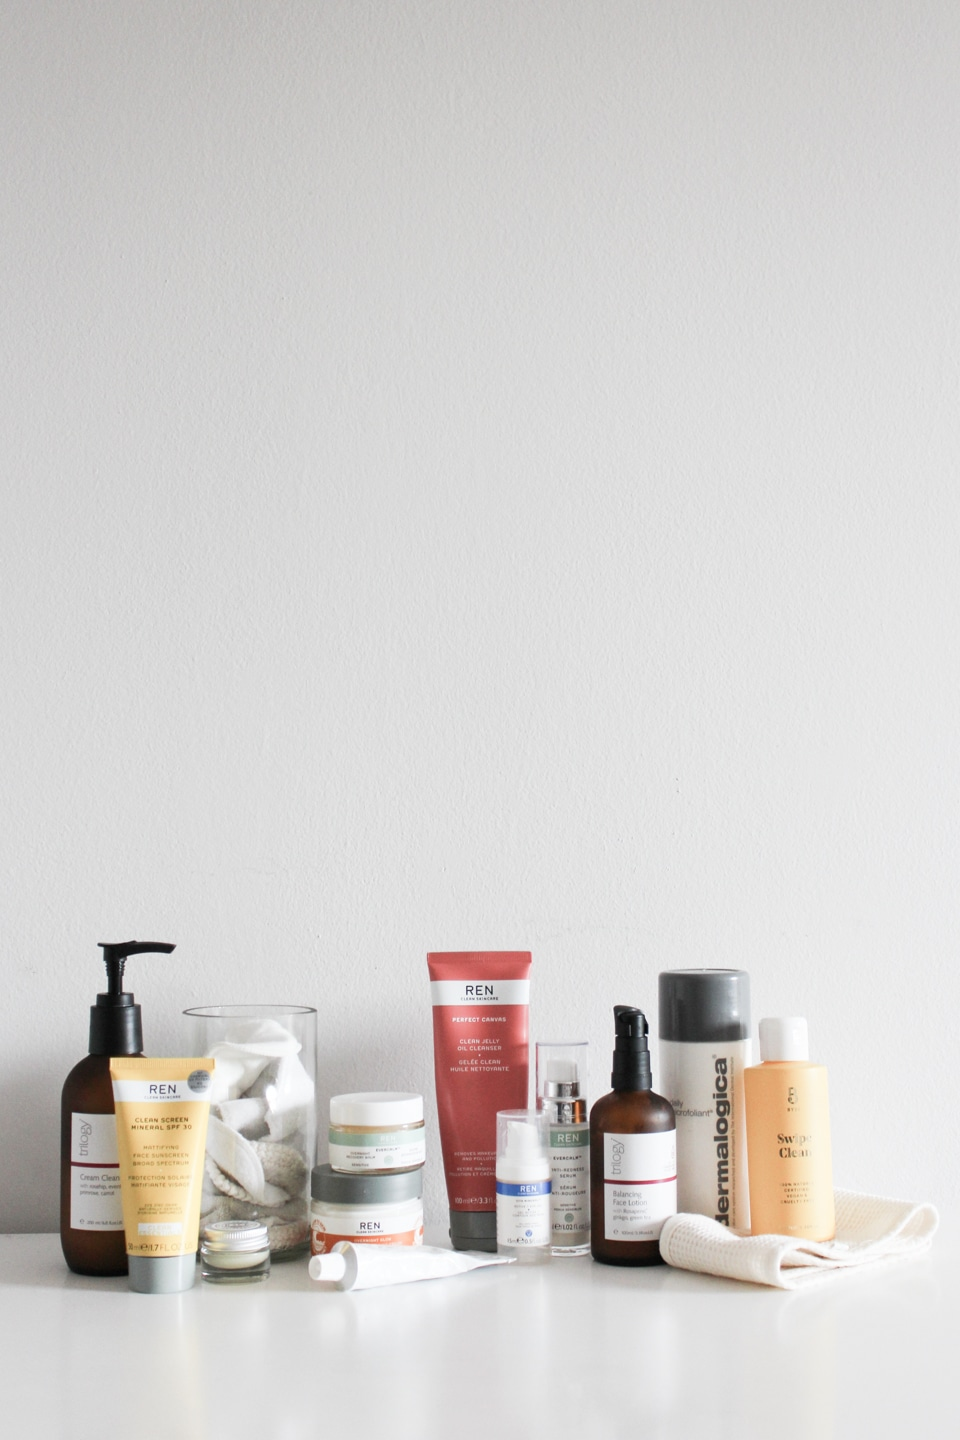 Array of sustainable skincare products from different brands